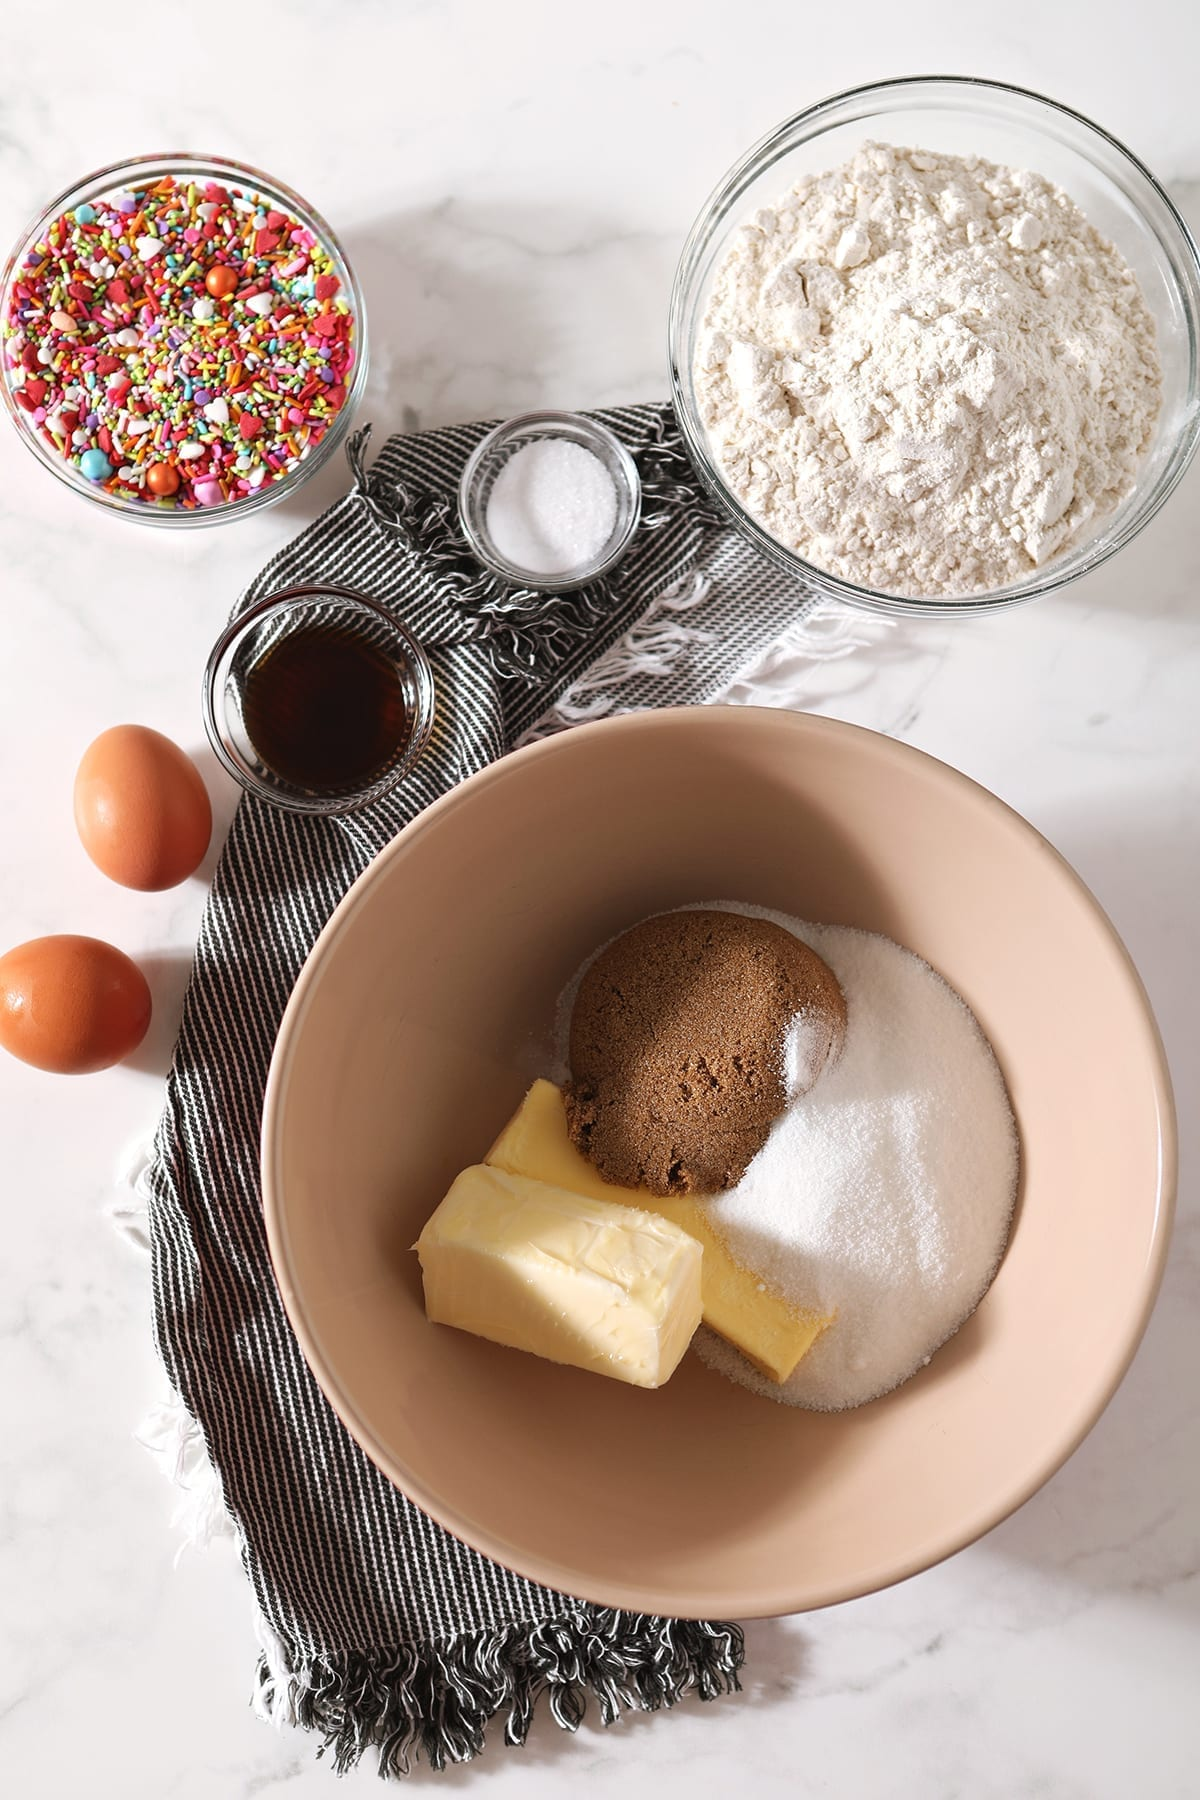 Sticks of butter and sugars are shown in a tan bowl, with eggs, vanilla and other ingredients around them